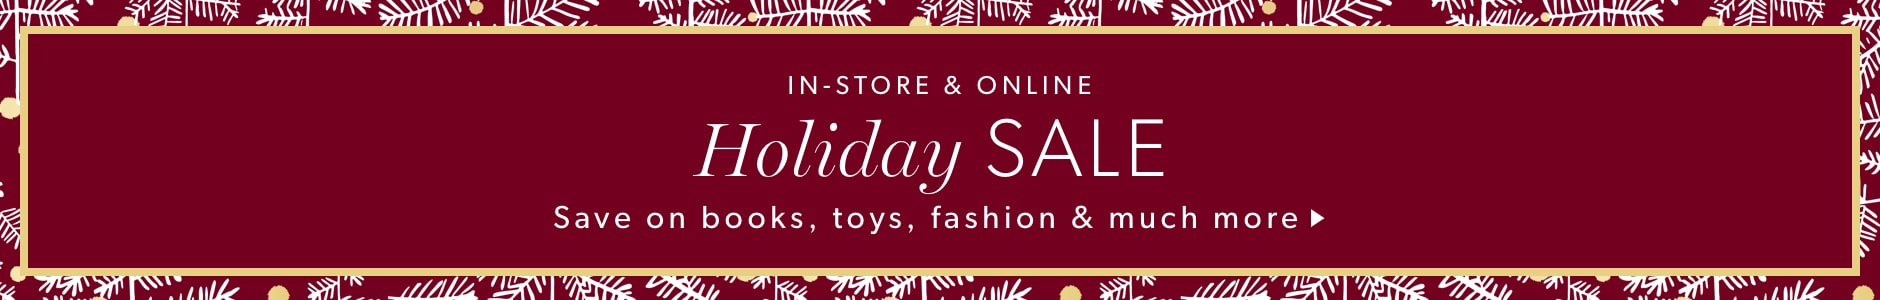 Holiday Sale. In-store & Online.